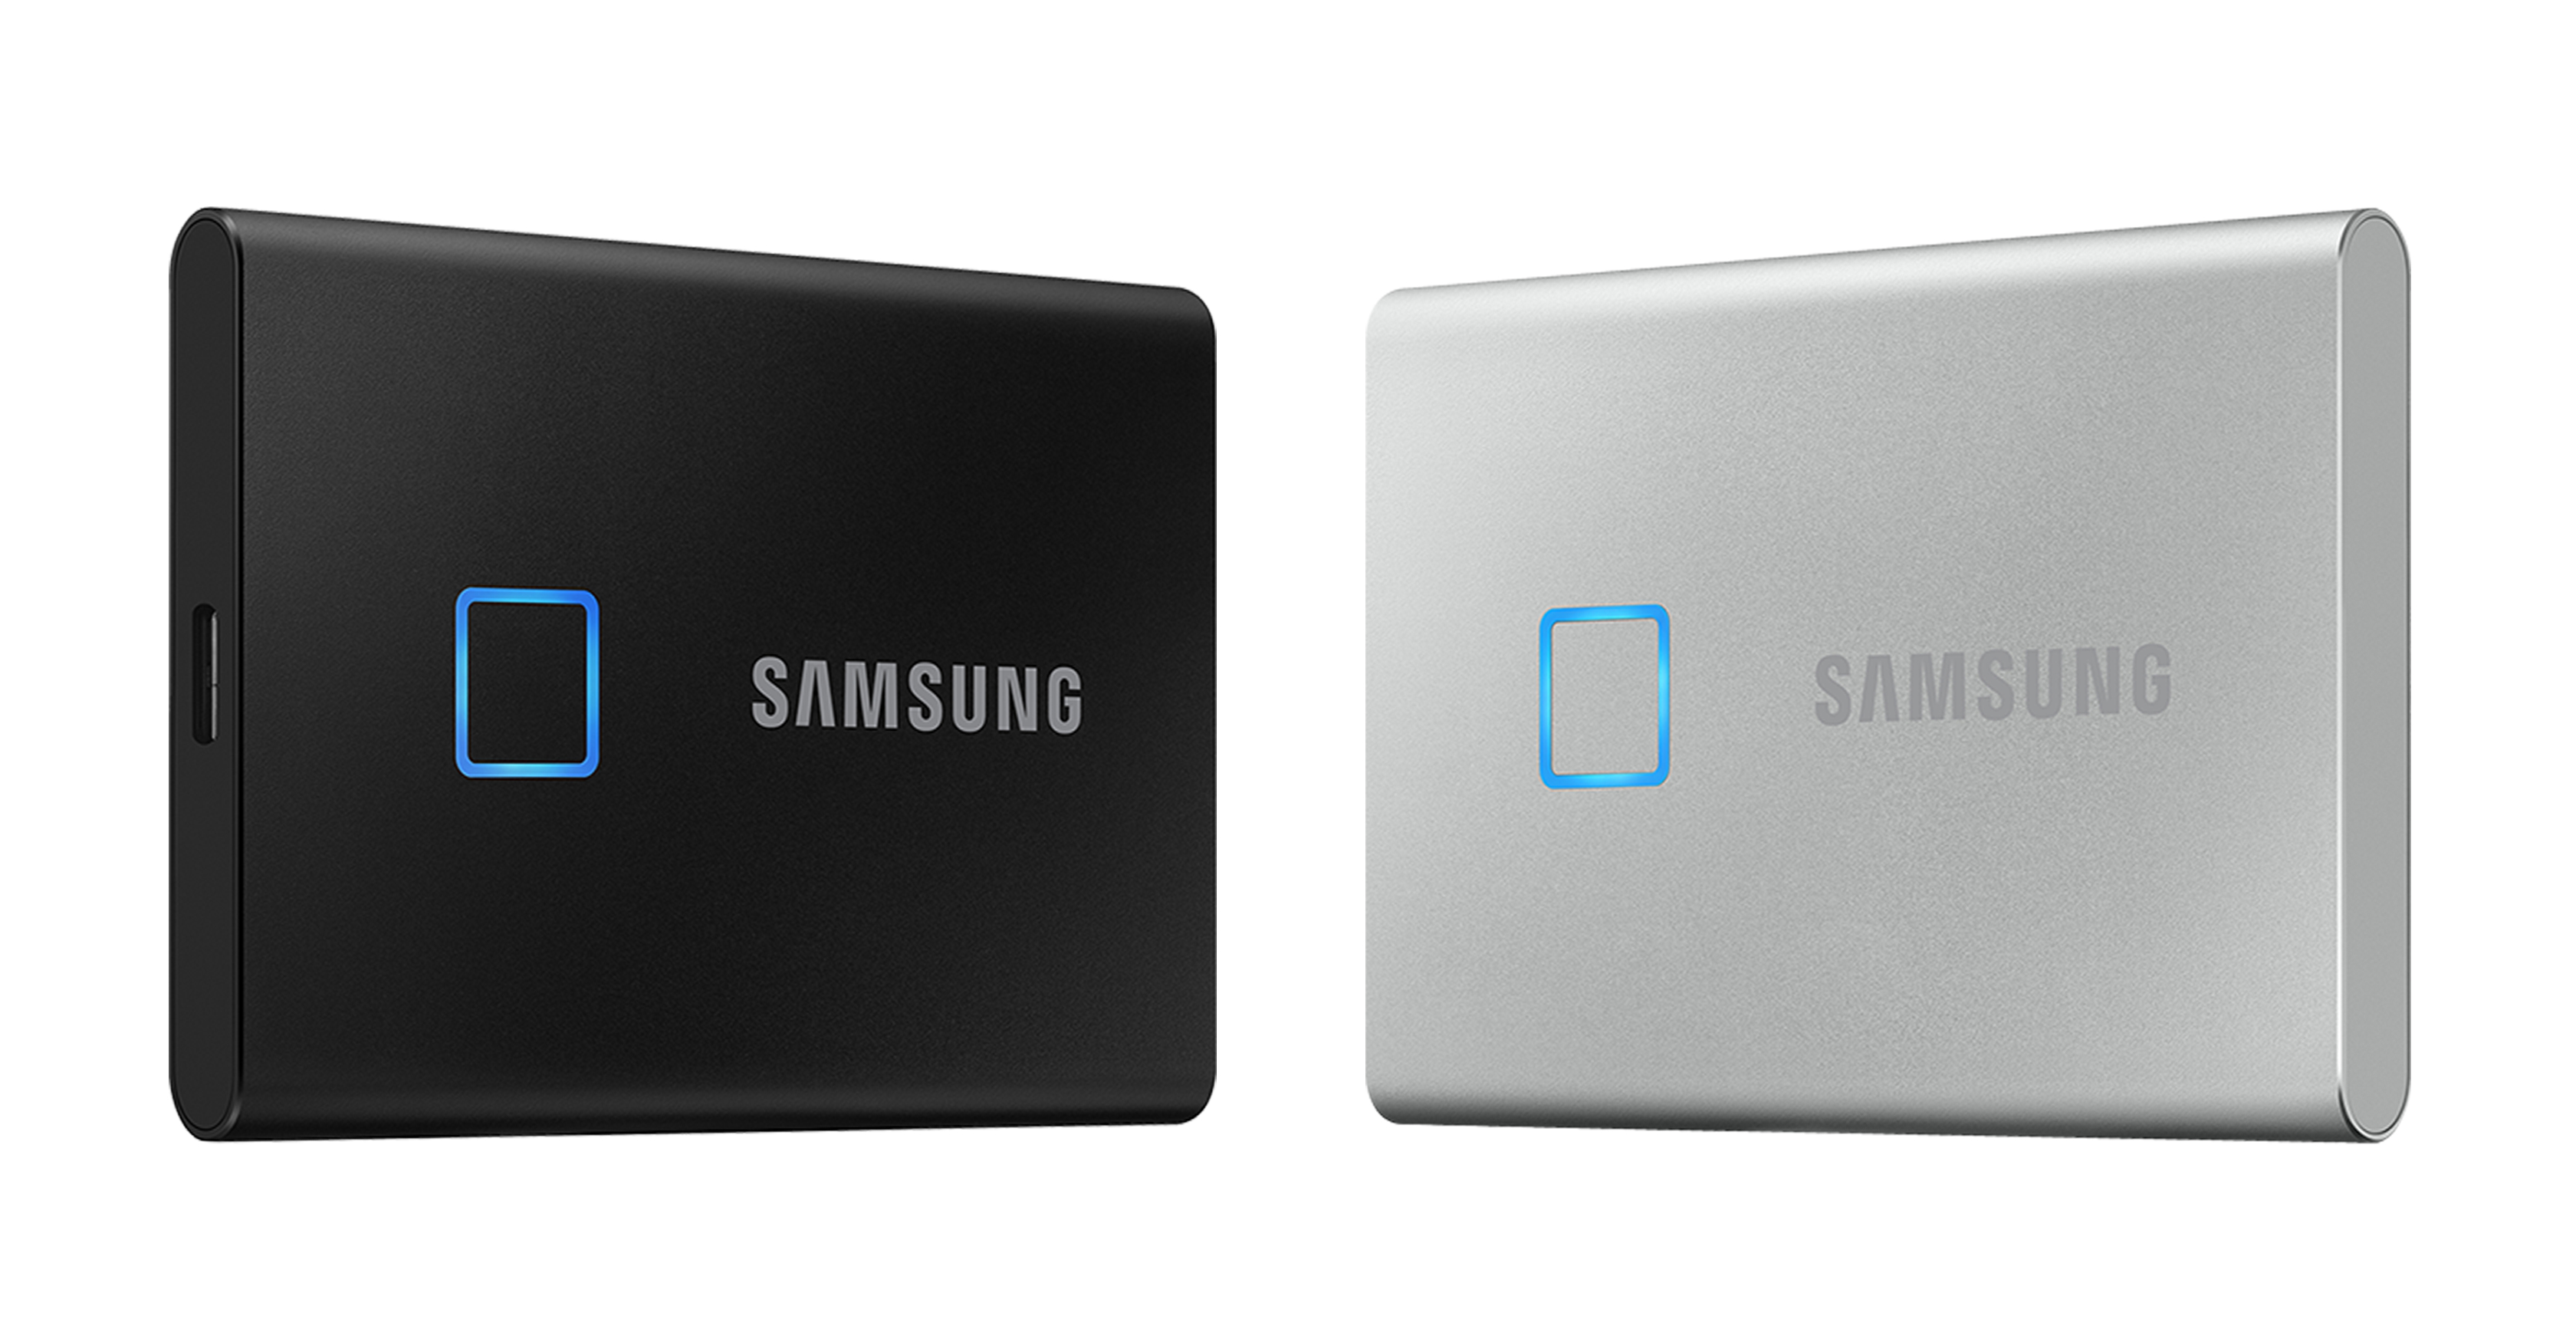 Samsung SSD T7 Touch